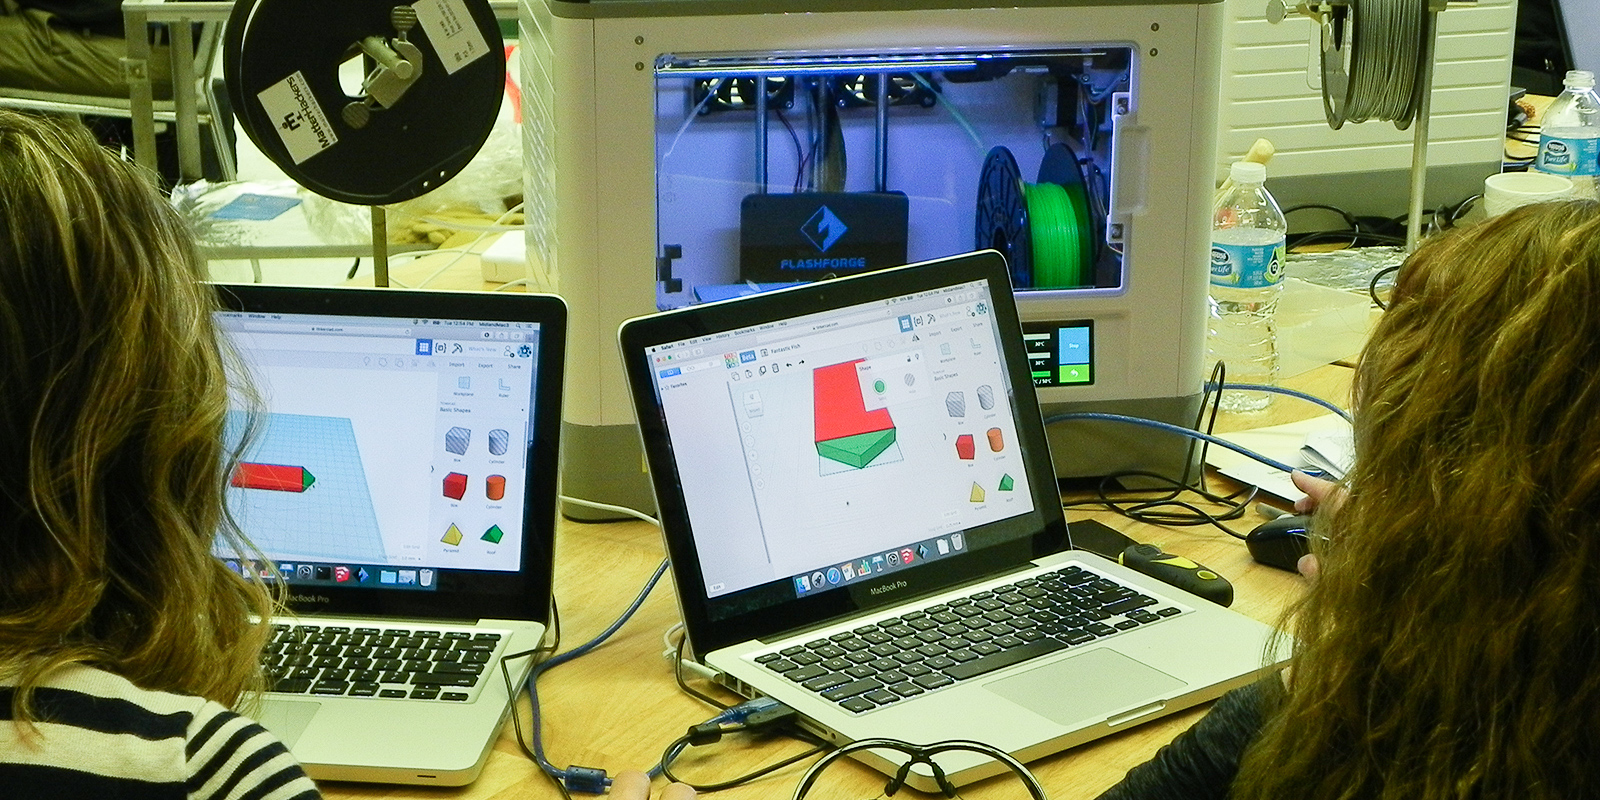 Laptops using CAD software and a 3D printer